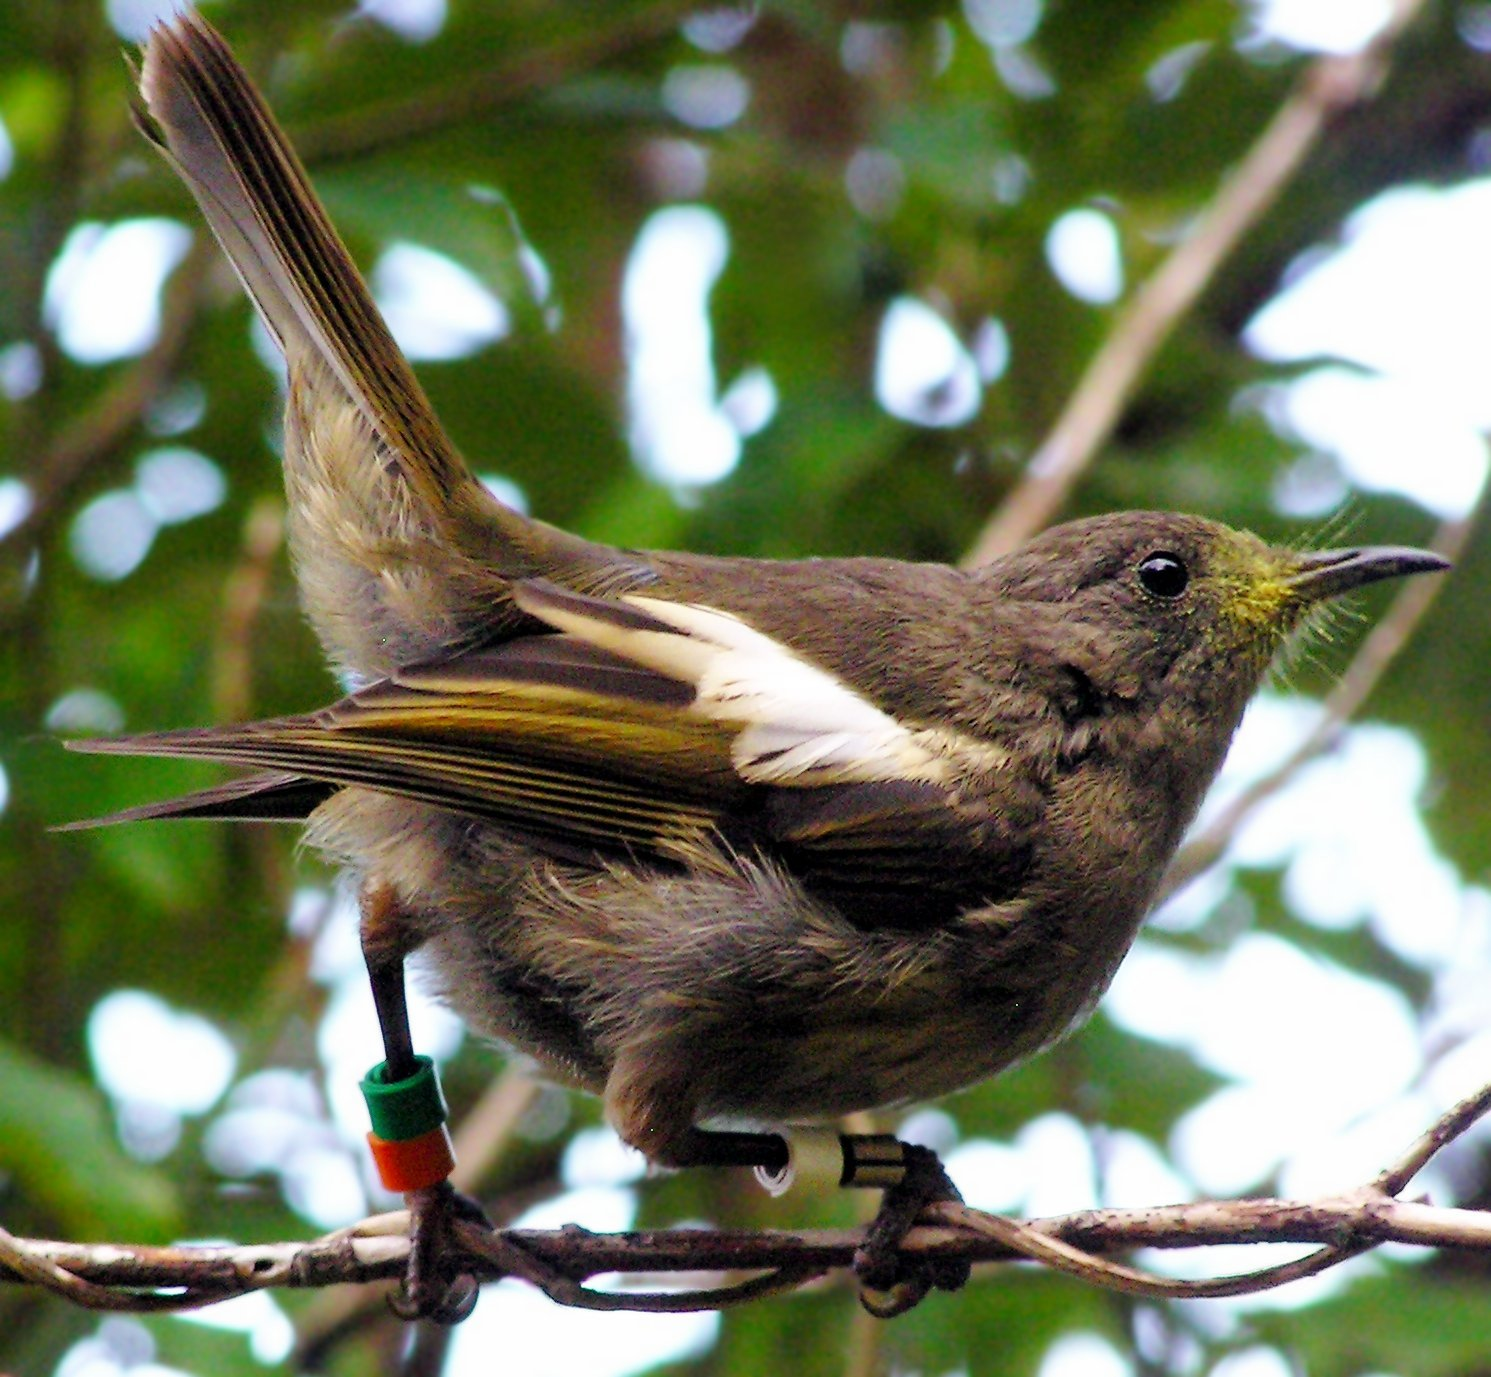 Hihi, endangered bird endemic to New Zealand